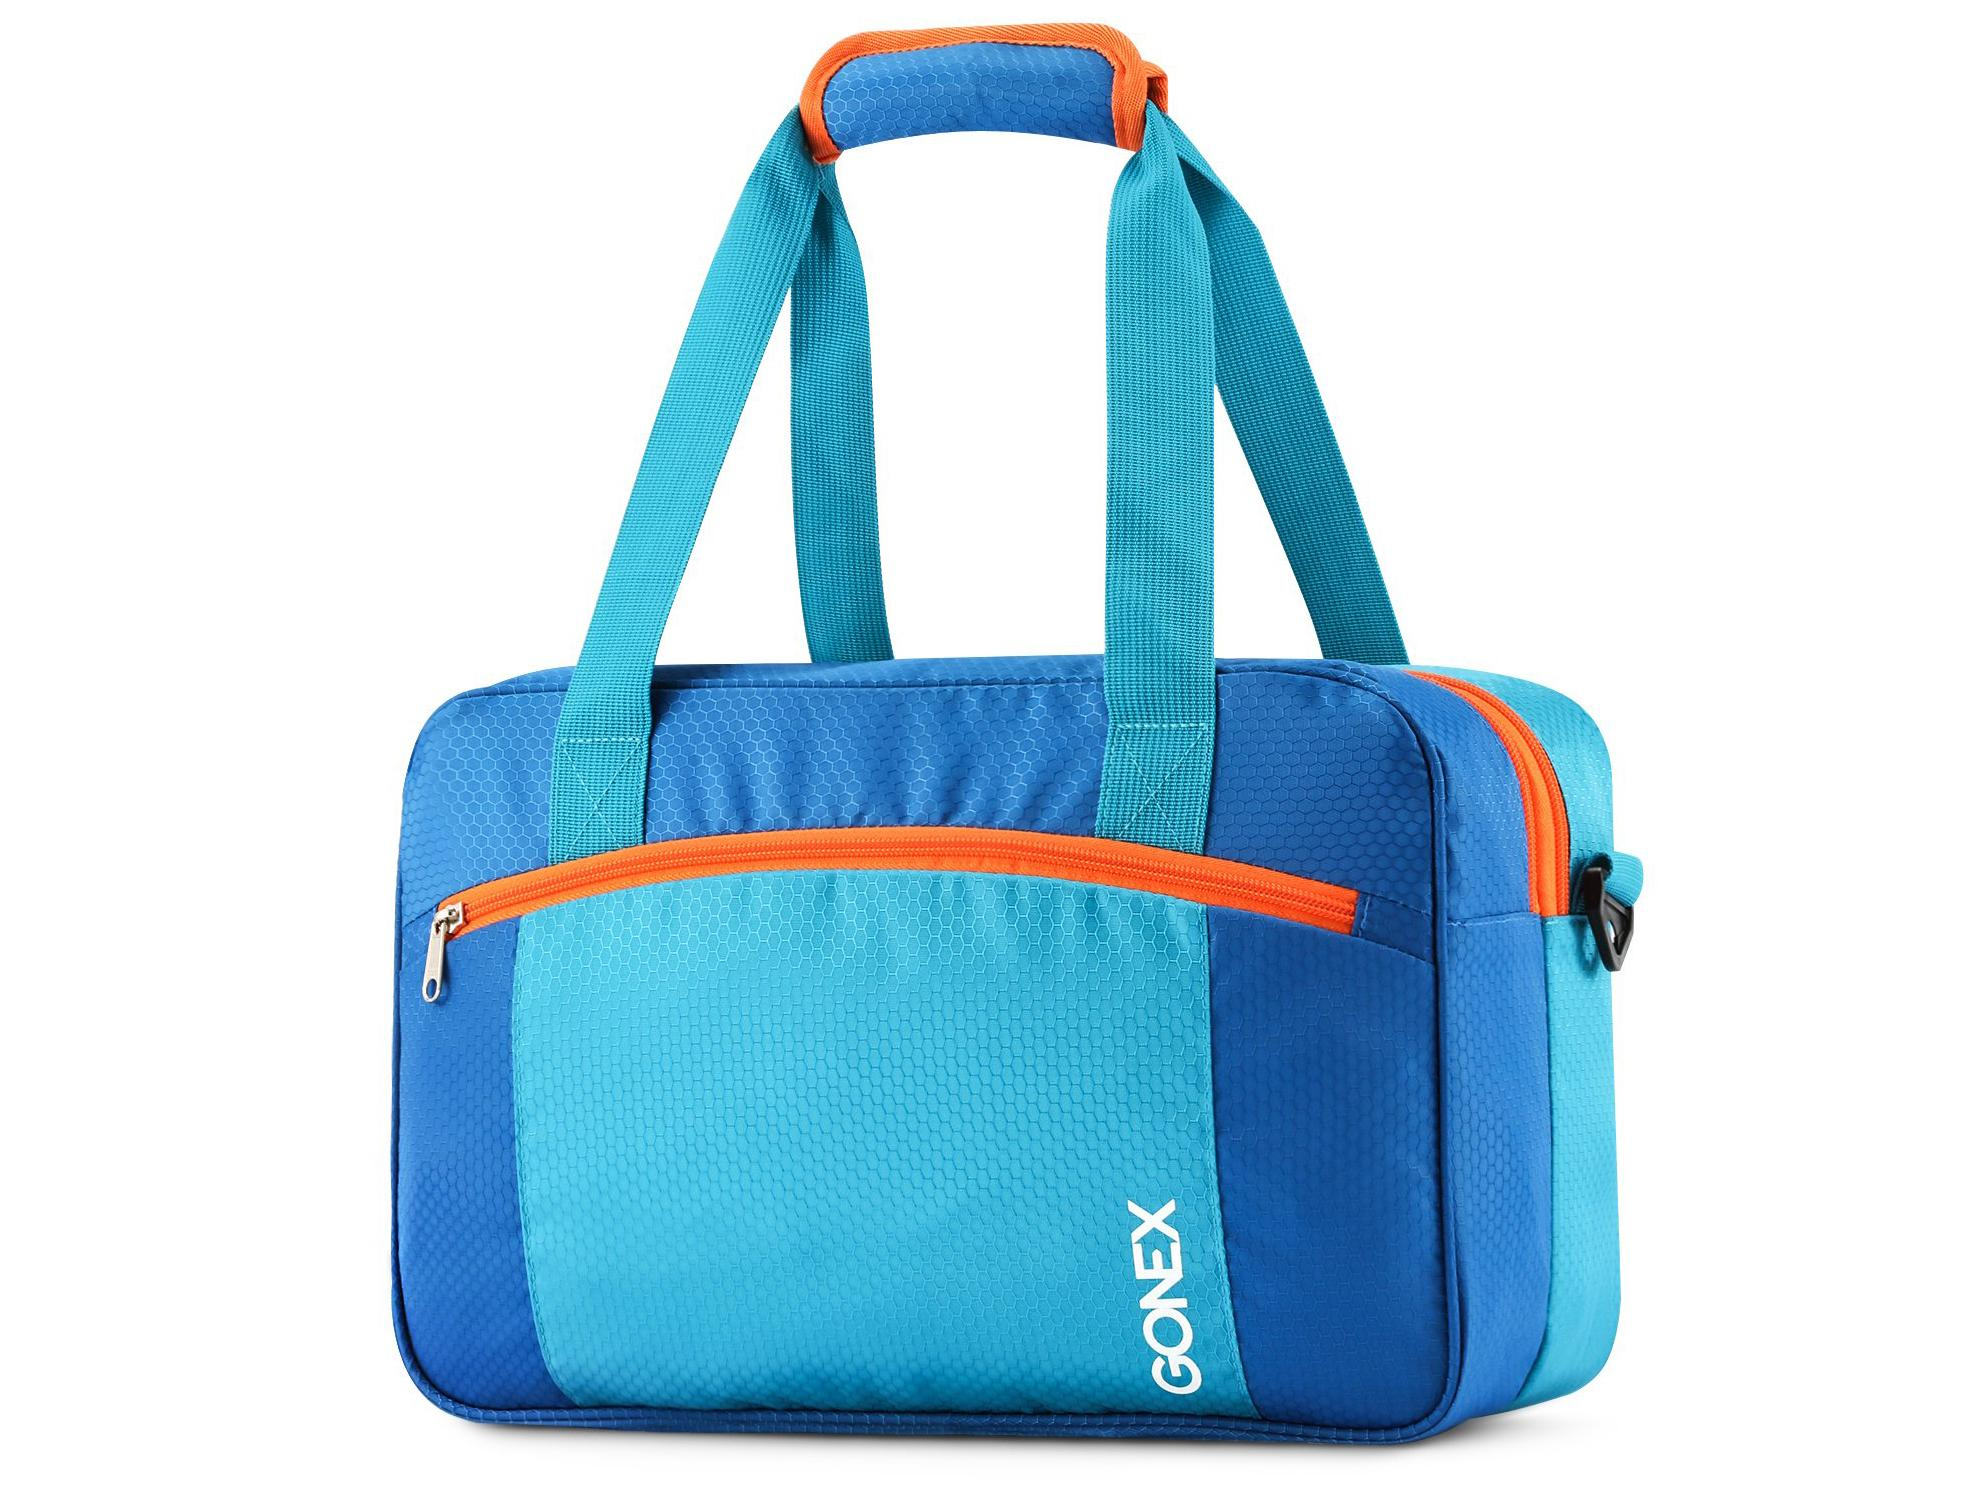 7e60e7c77a82 7 best swim bags | The Independent